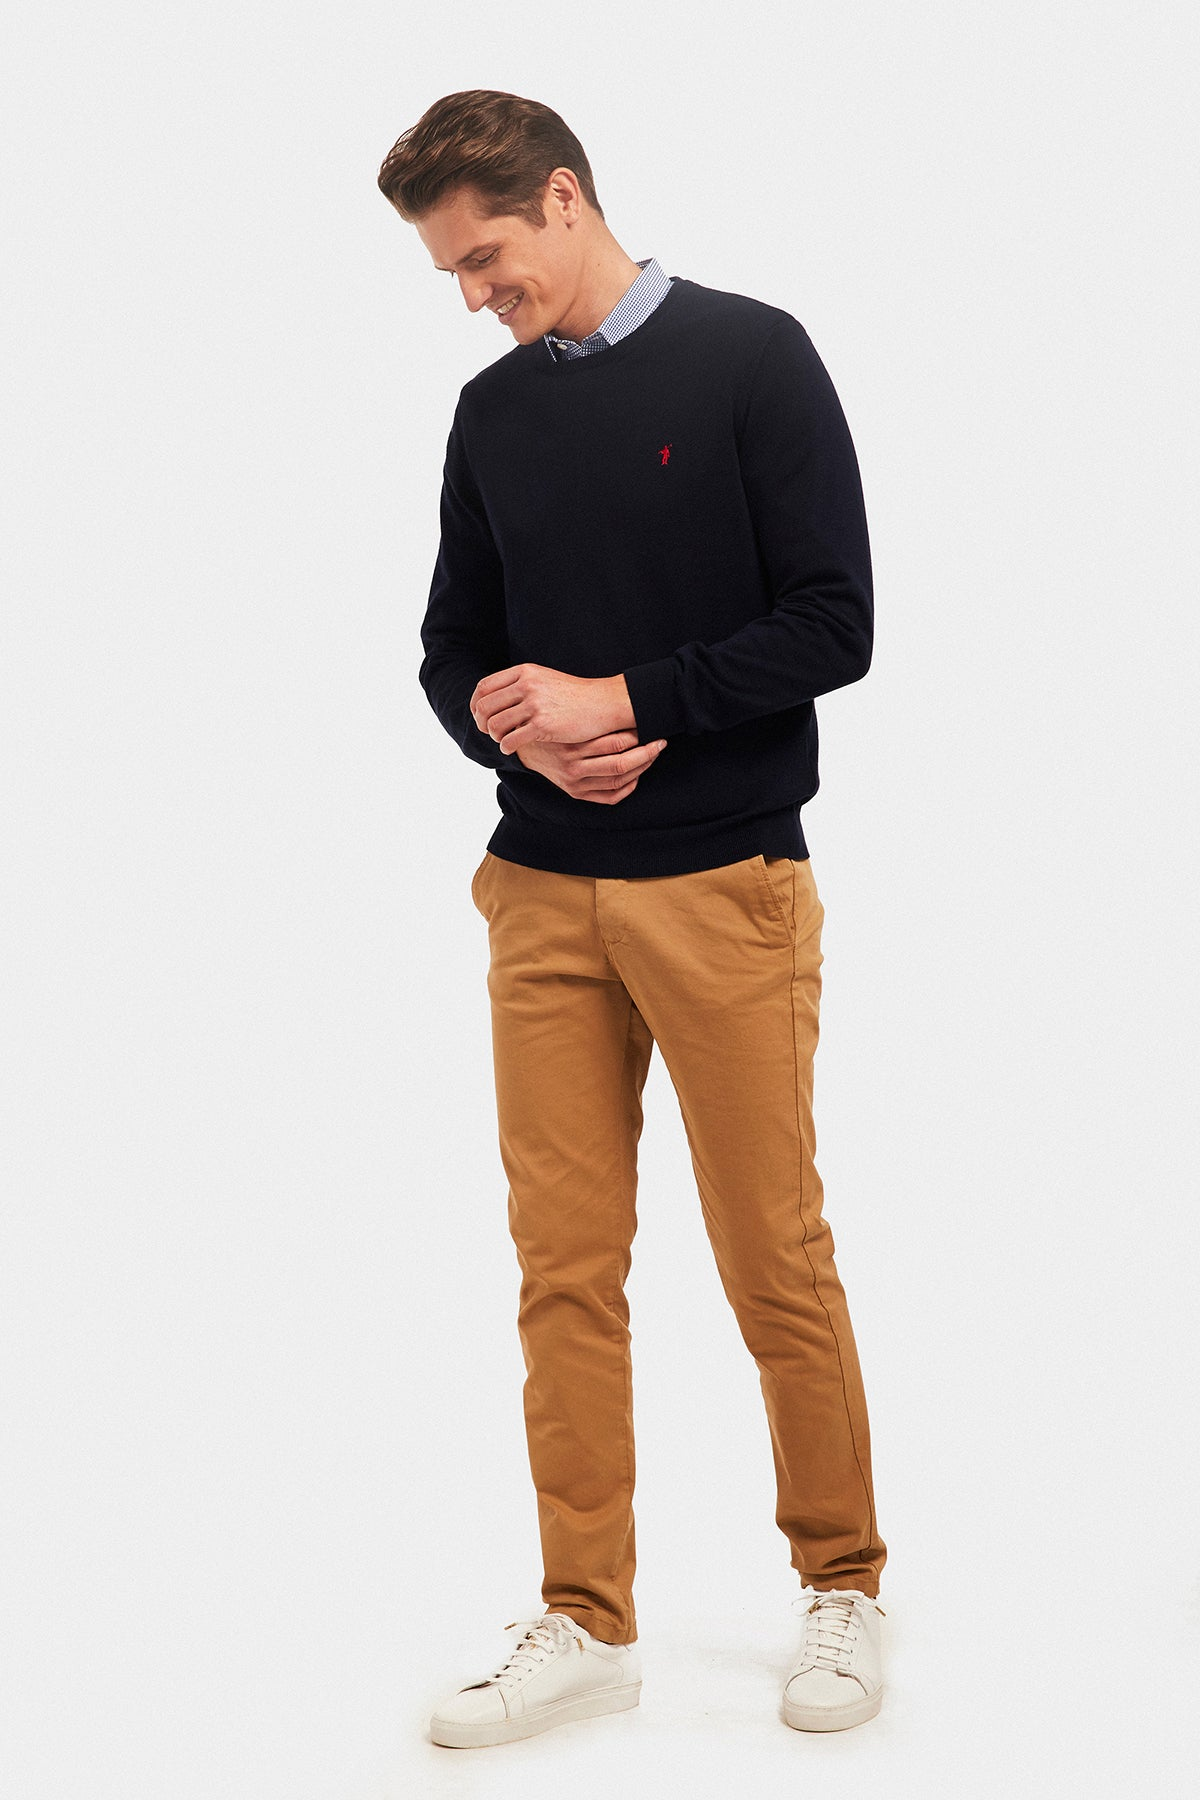 Navy blue cotton jumper